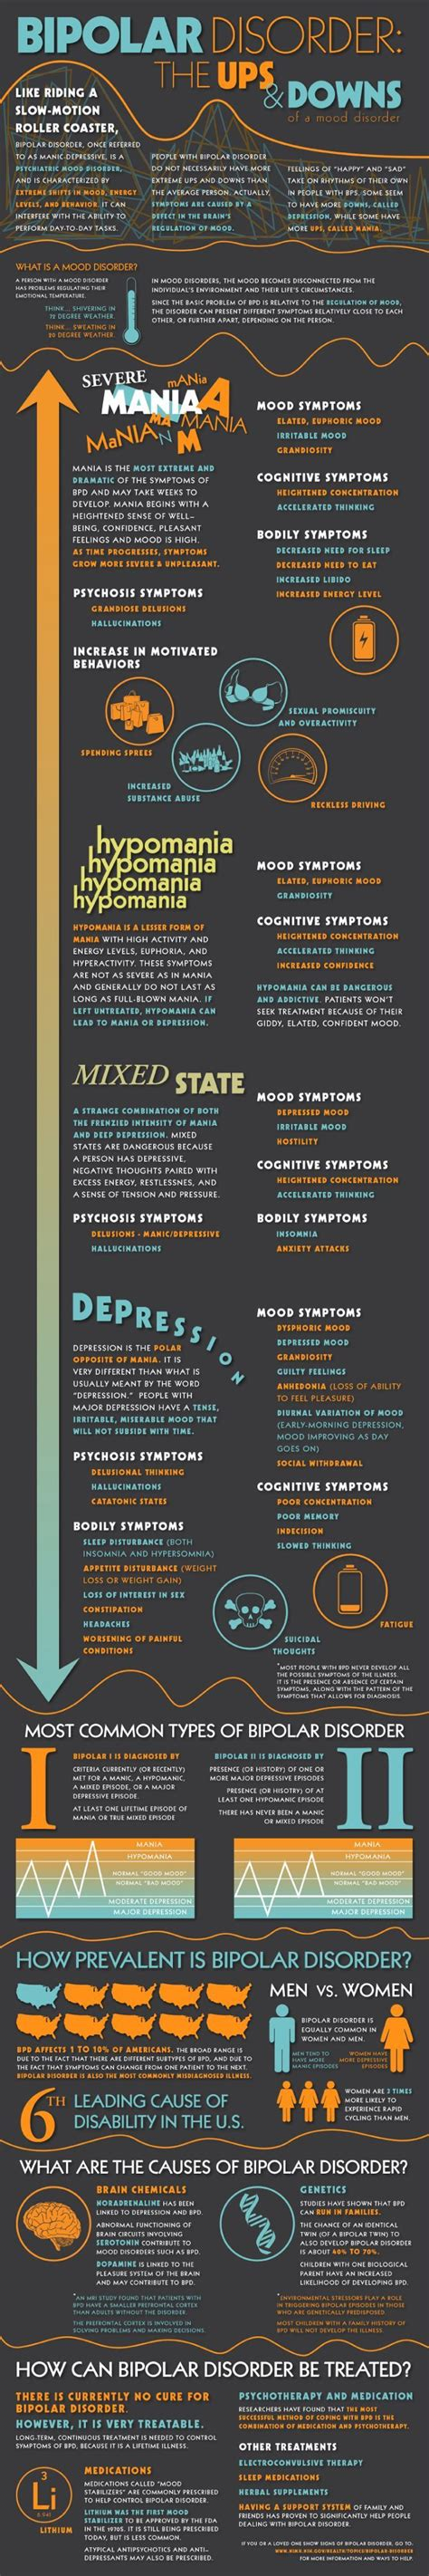 Bipolar Disorder Infographic An Infographic Showing The. Asterisk Voip Provider San Jose Safe And Lock. Shipping Your Car Overseas Und Online Degrees. Create Custom Business Cards Online. Att Cable Tv And Internet Training For A Chef. Business Management Consulting. Workers Compensation Agency Michigan. Dental Implants Coral Springs. Loans On Lawsuit Settlement 5 Cash Back Gas